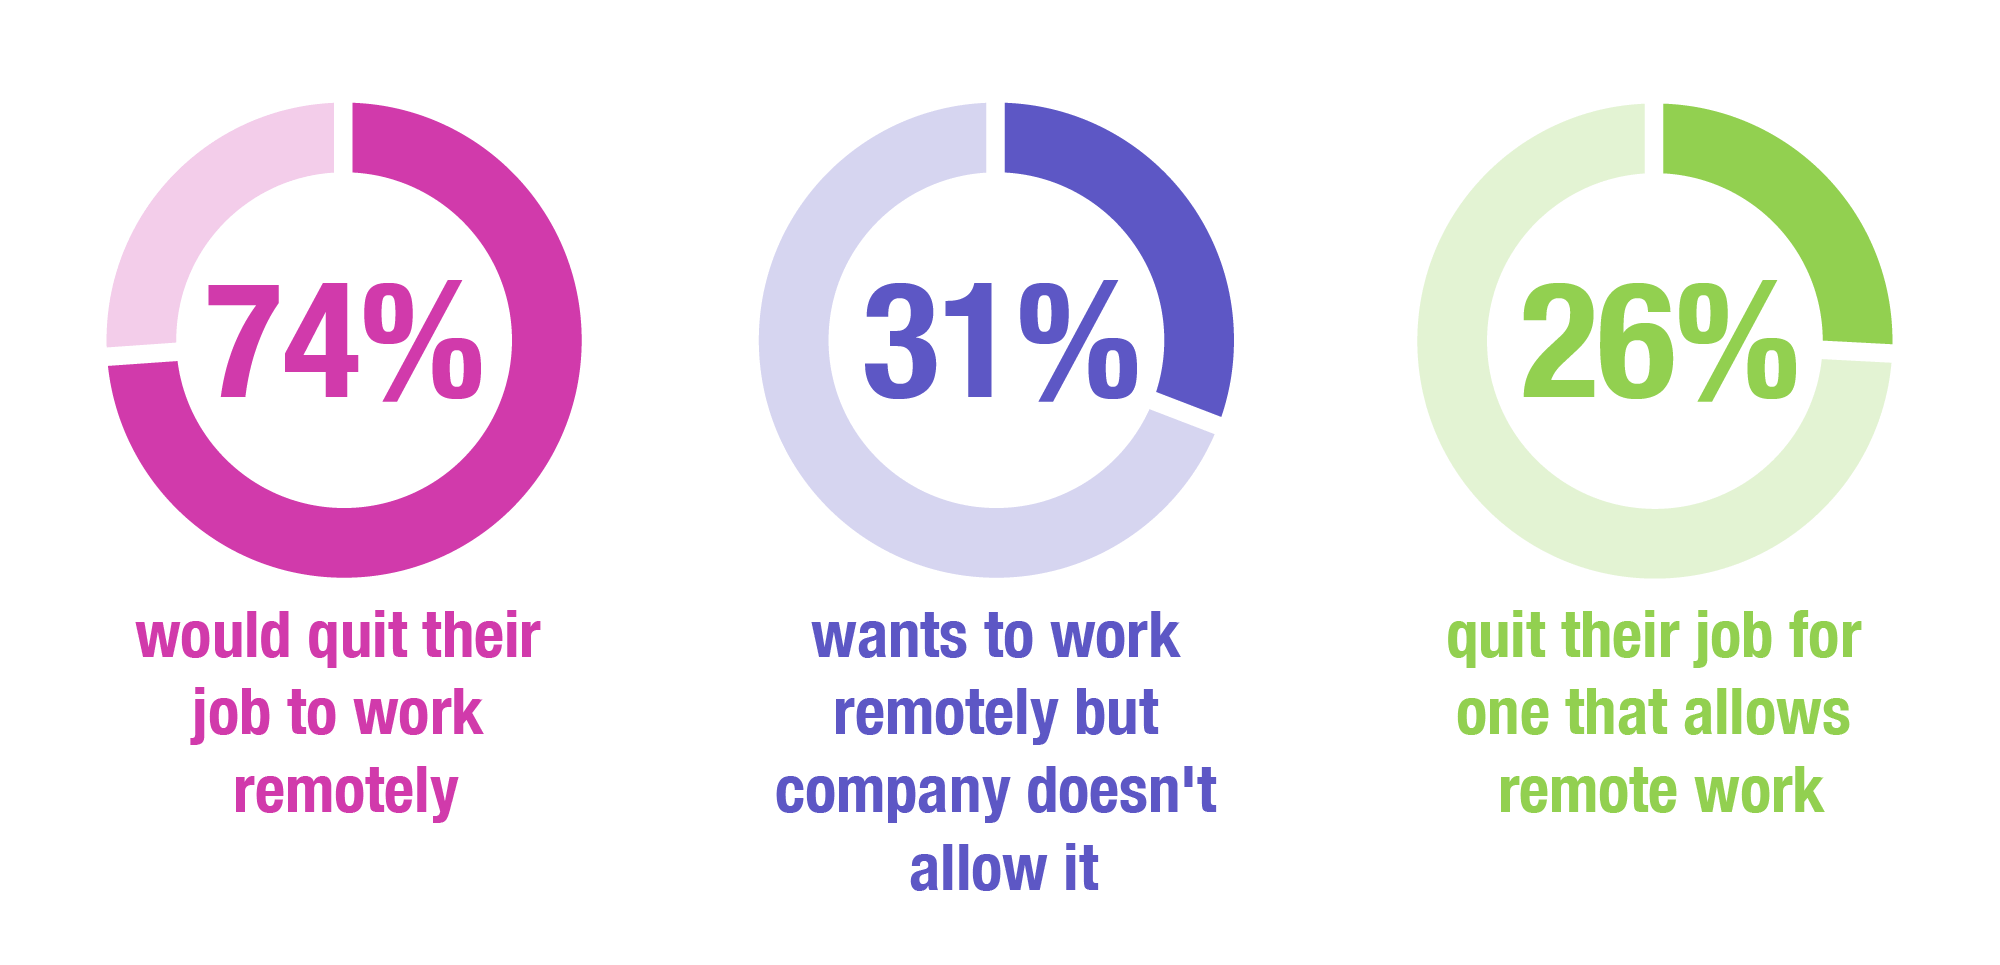 Doughnut chart to show that people will quit their job for one that offers remote working